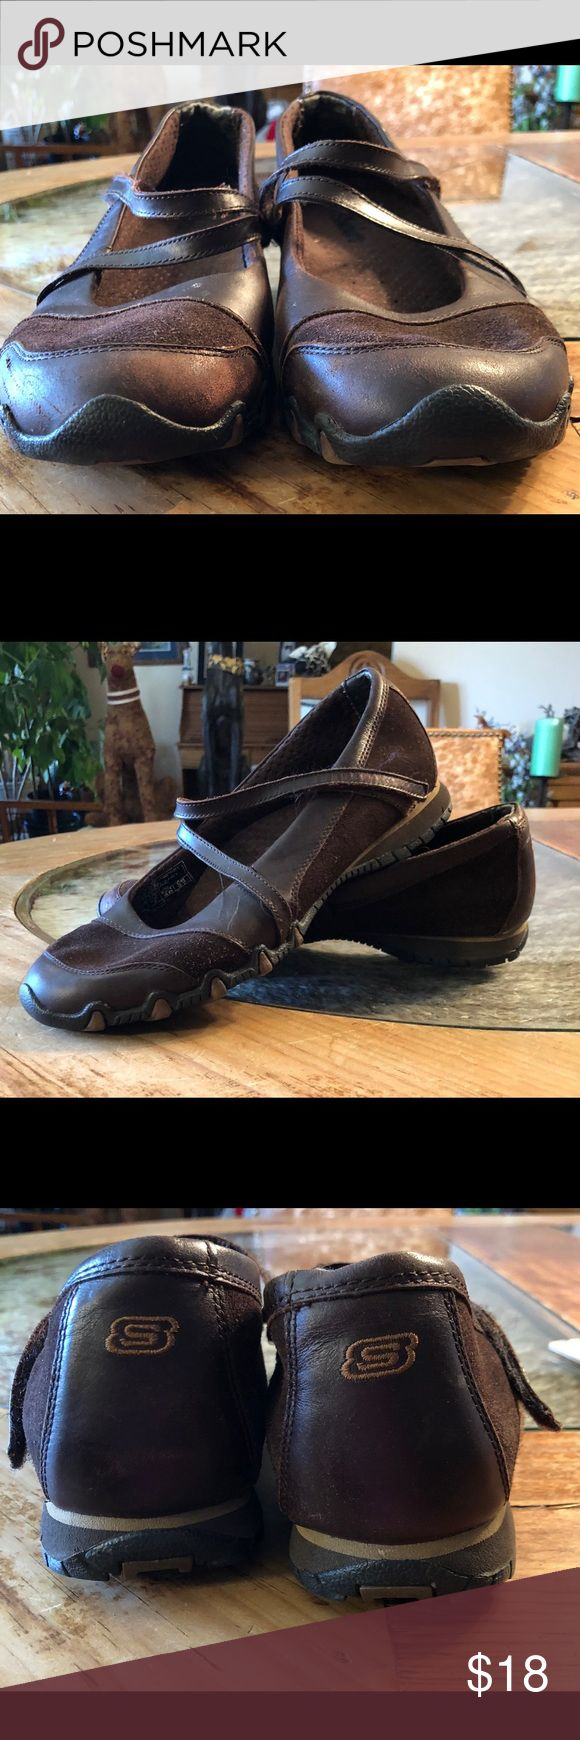 Skechers ladies brown leather & suede Mary Janes Skechers ladies brown suede & leather Mary Janes - used good condition Skechers Shoes